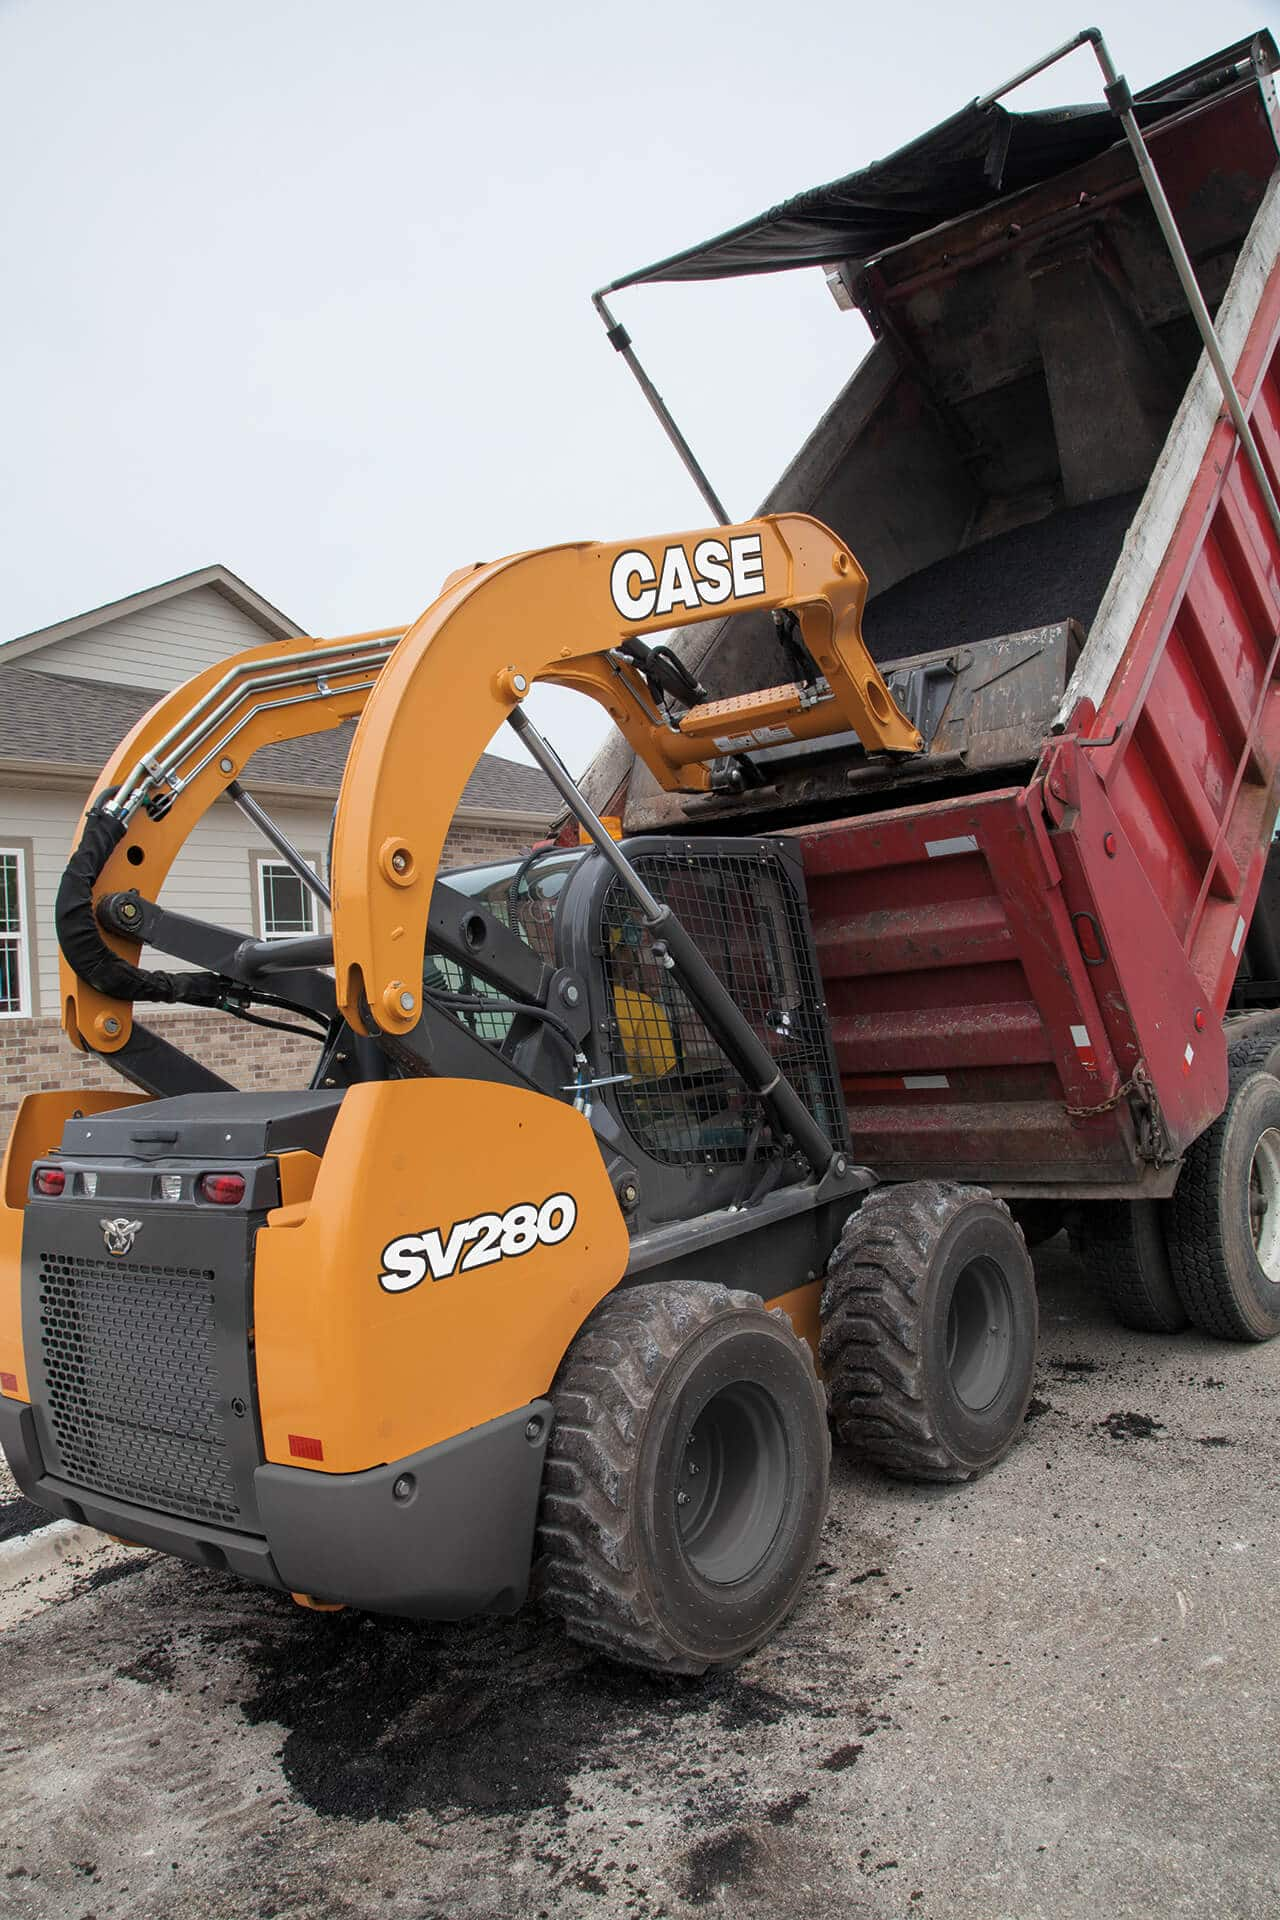 CASE SV280 Skid Steer Loader | CASE Construction Equipment